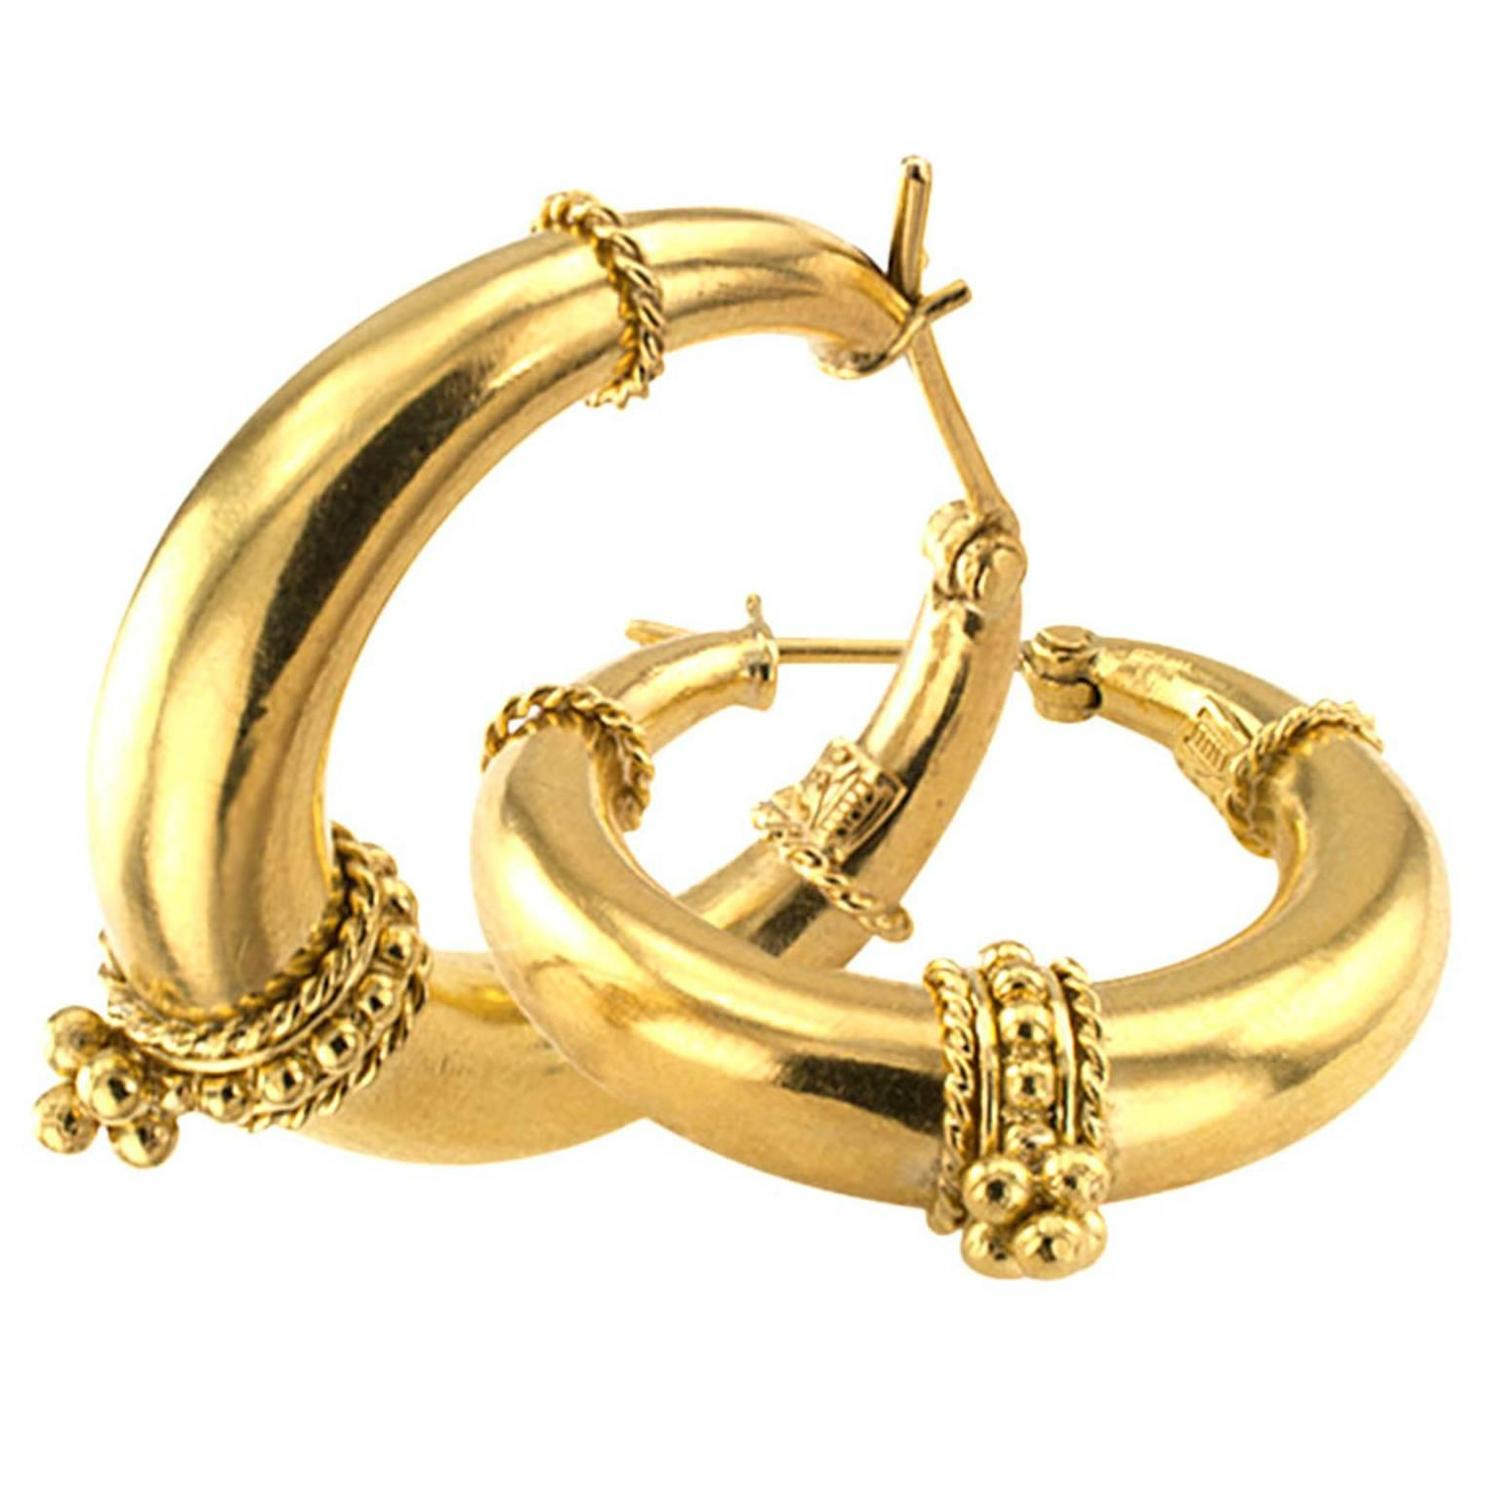 hoop earrings for sale temple st clair gold hoop earrings for sale at 1stdibs 9570